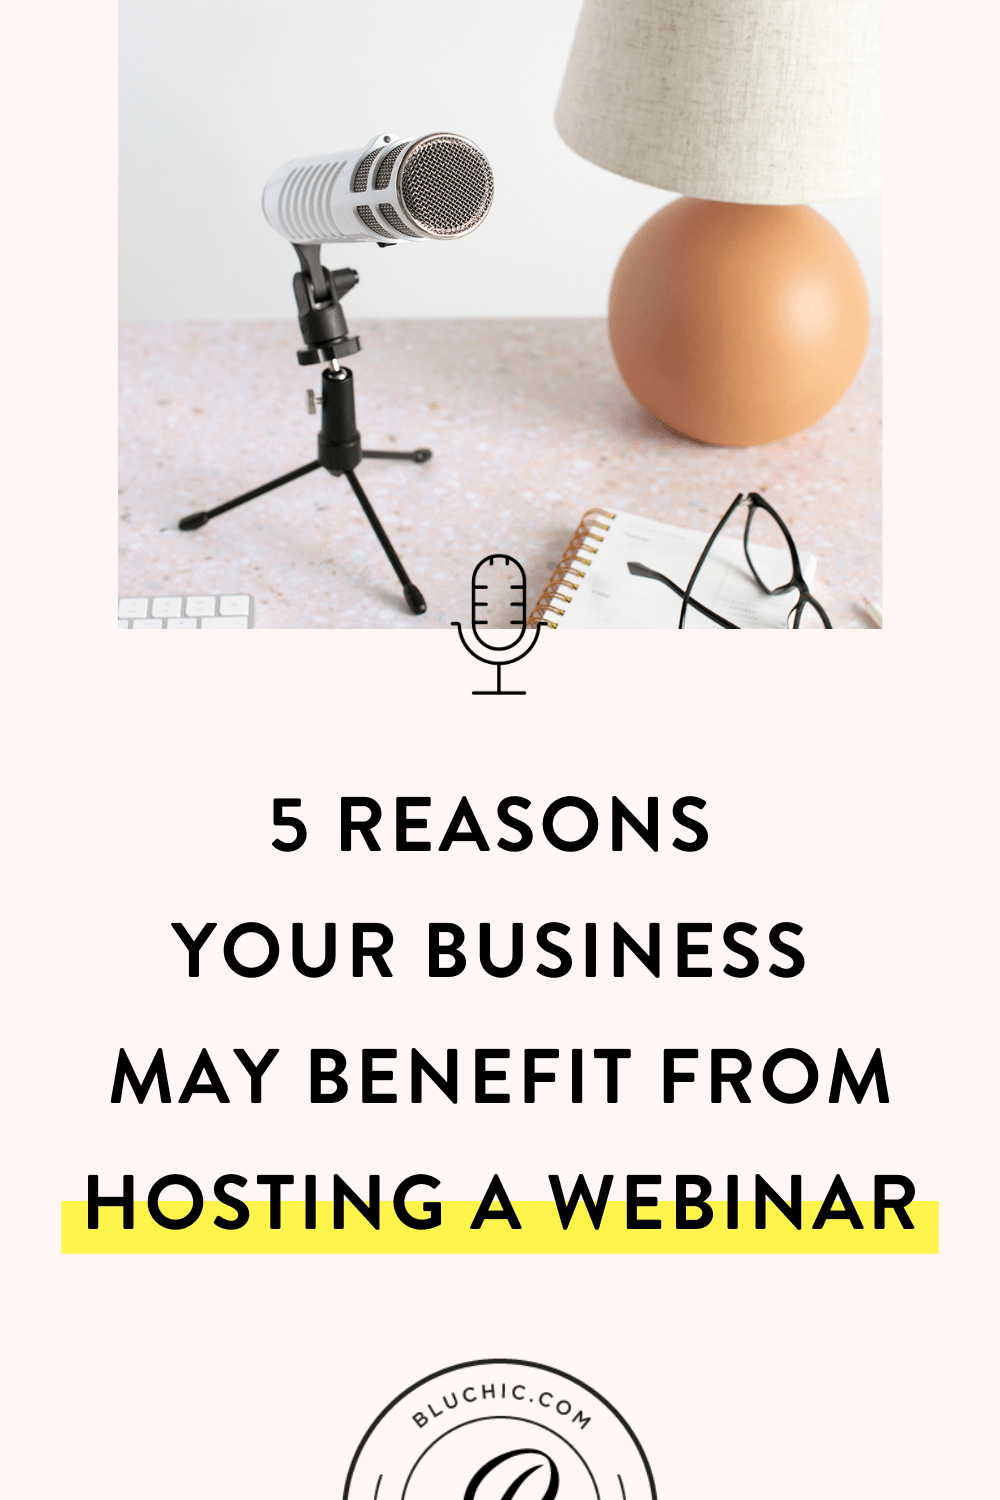 5 Reasons Your Business May Benefit From Hosting a Webinar | Have you thought about hosting a webinar, but haven't done it yet? They can help you drive quality leads, increase brand awareness & authority, and more. Learn more about the 5 benefits to hosting a webinar for your biz!